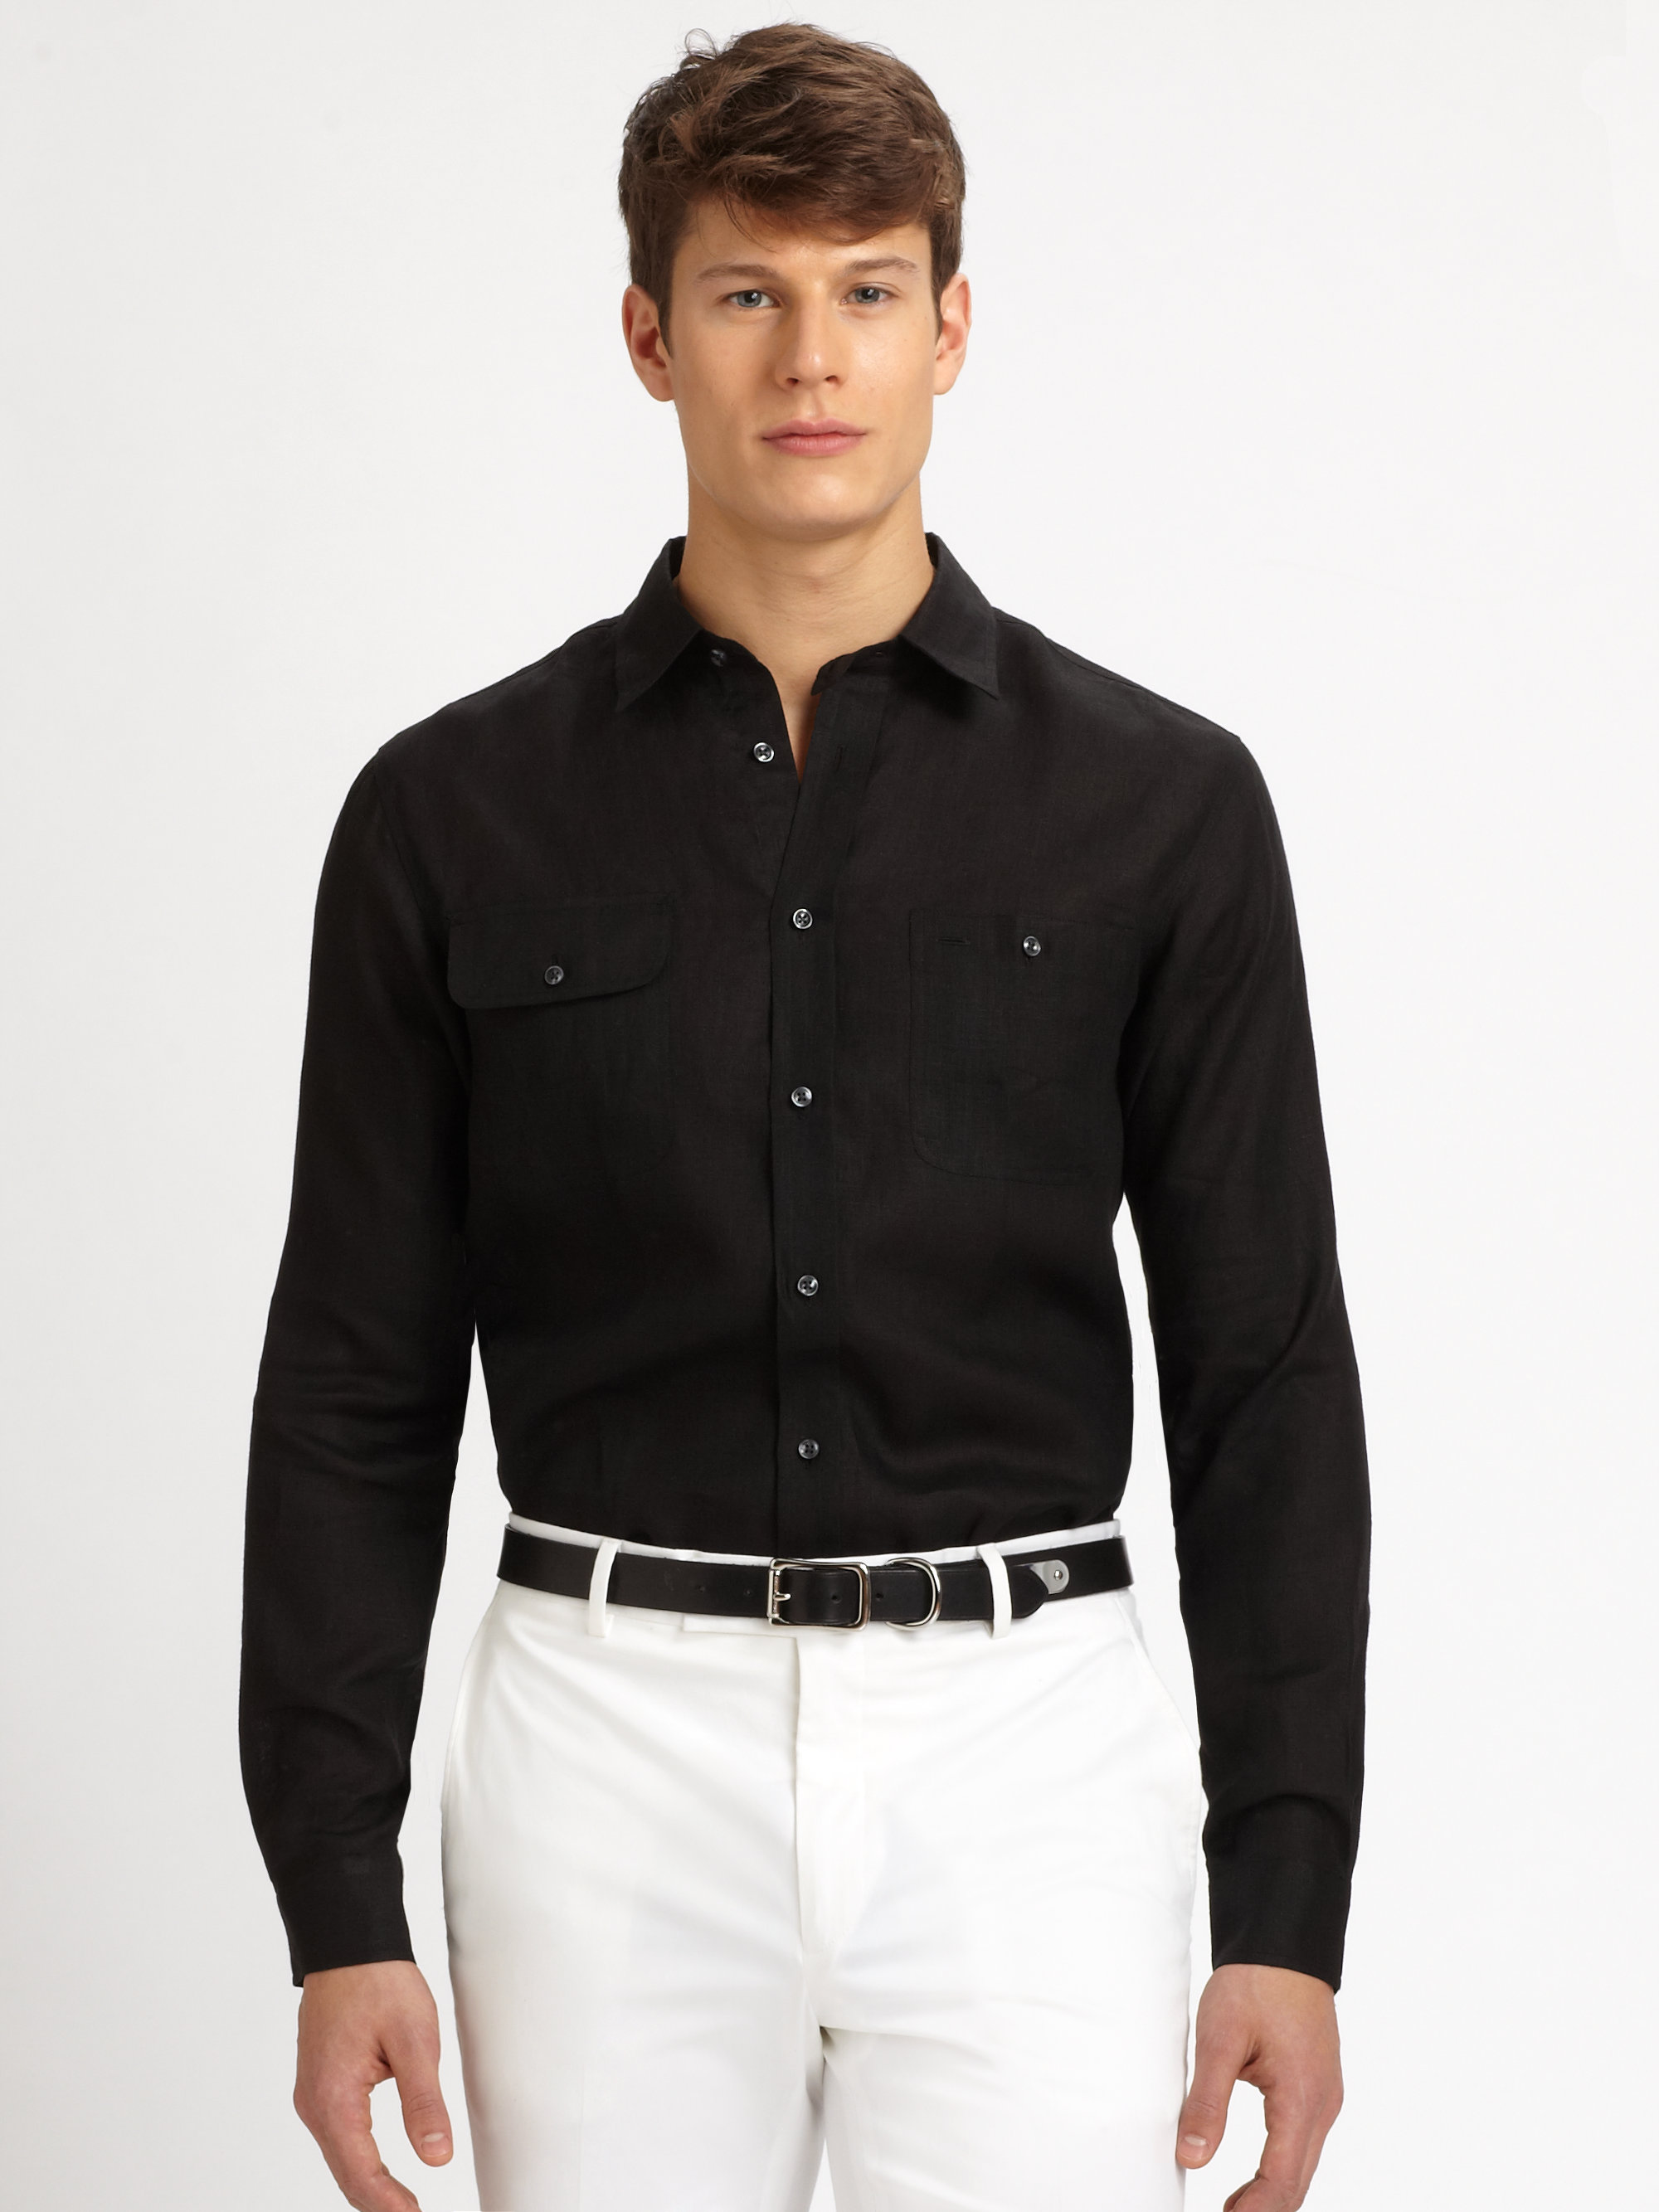 Ralph lauren black label Linen Military Sport Shirt in ...